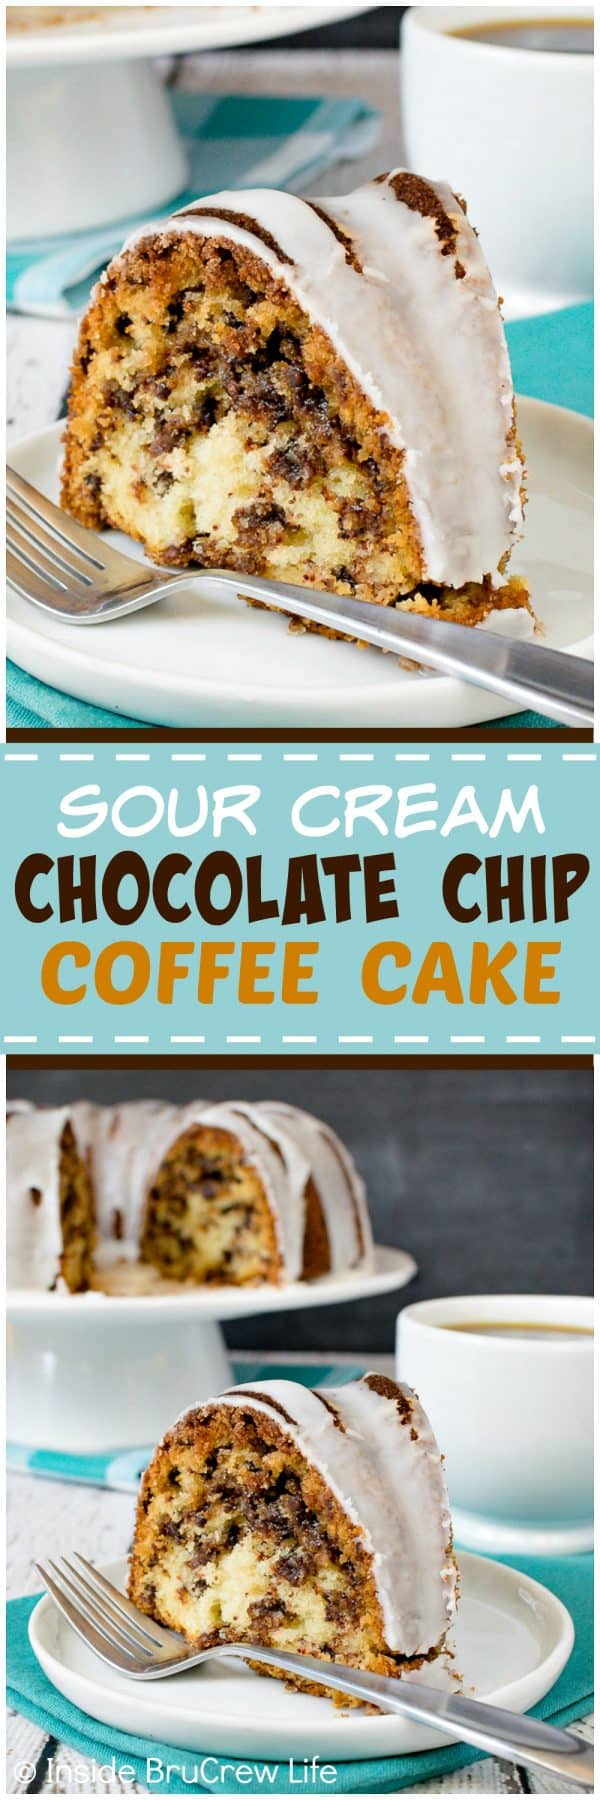 Sour Cream Chocolate Chip Coffee Cake - this coffee cake has a swirl cinnamon sugar inside and a sweet glaze on top. It's the perfect recipe for breakfast or brunch! #breakfast #coffeecake #bundtcake #sweet #recipe #brunch